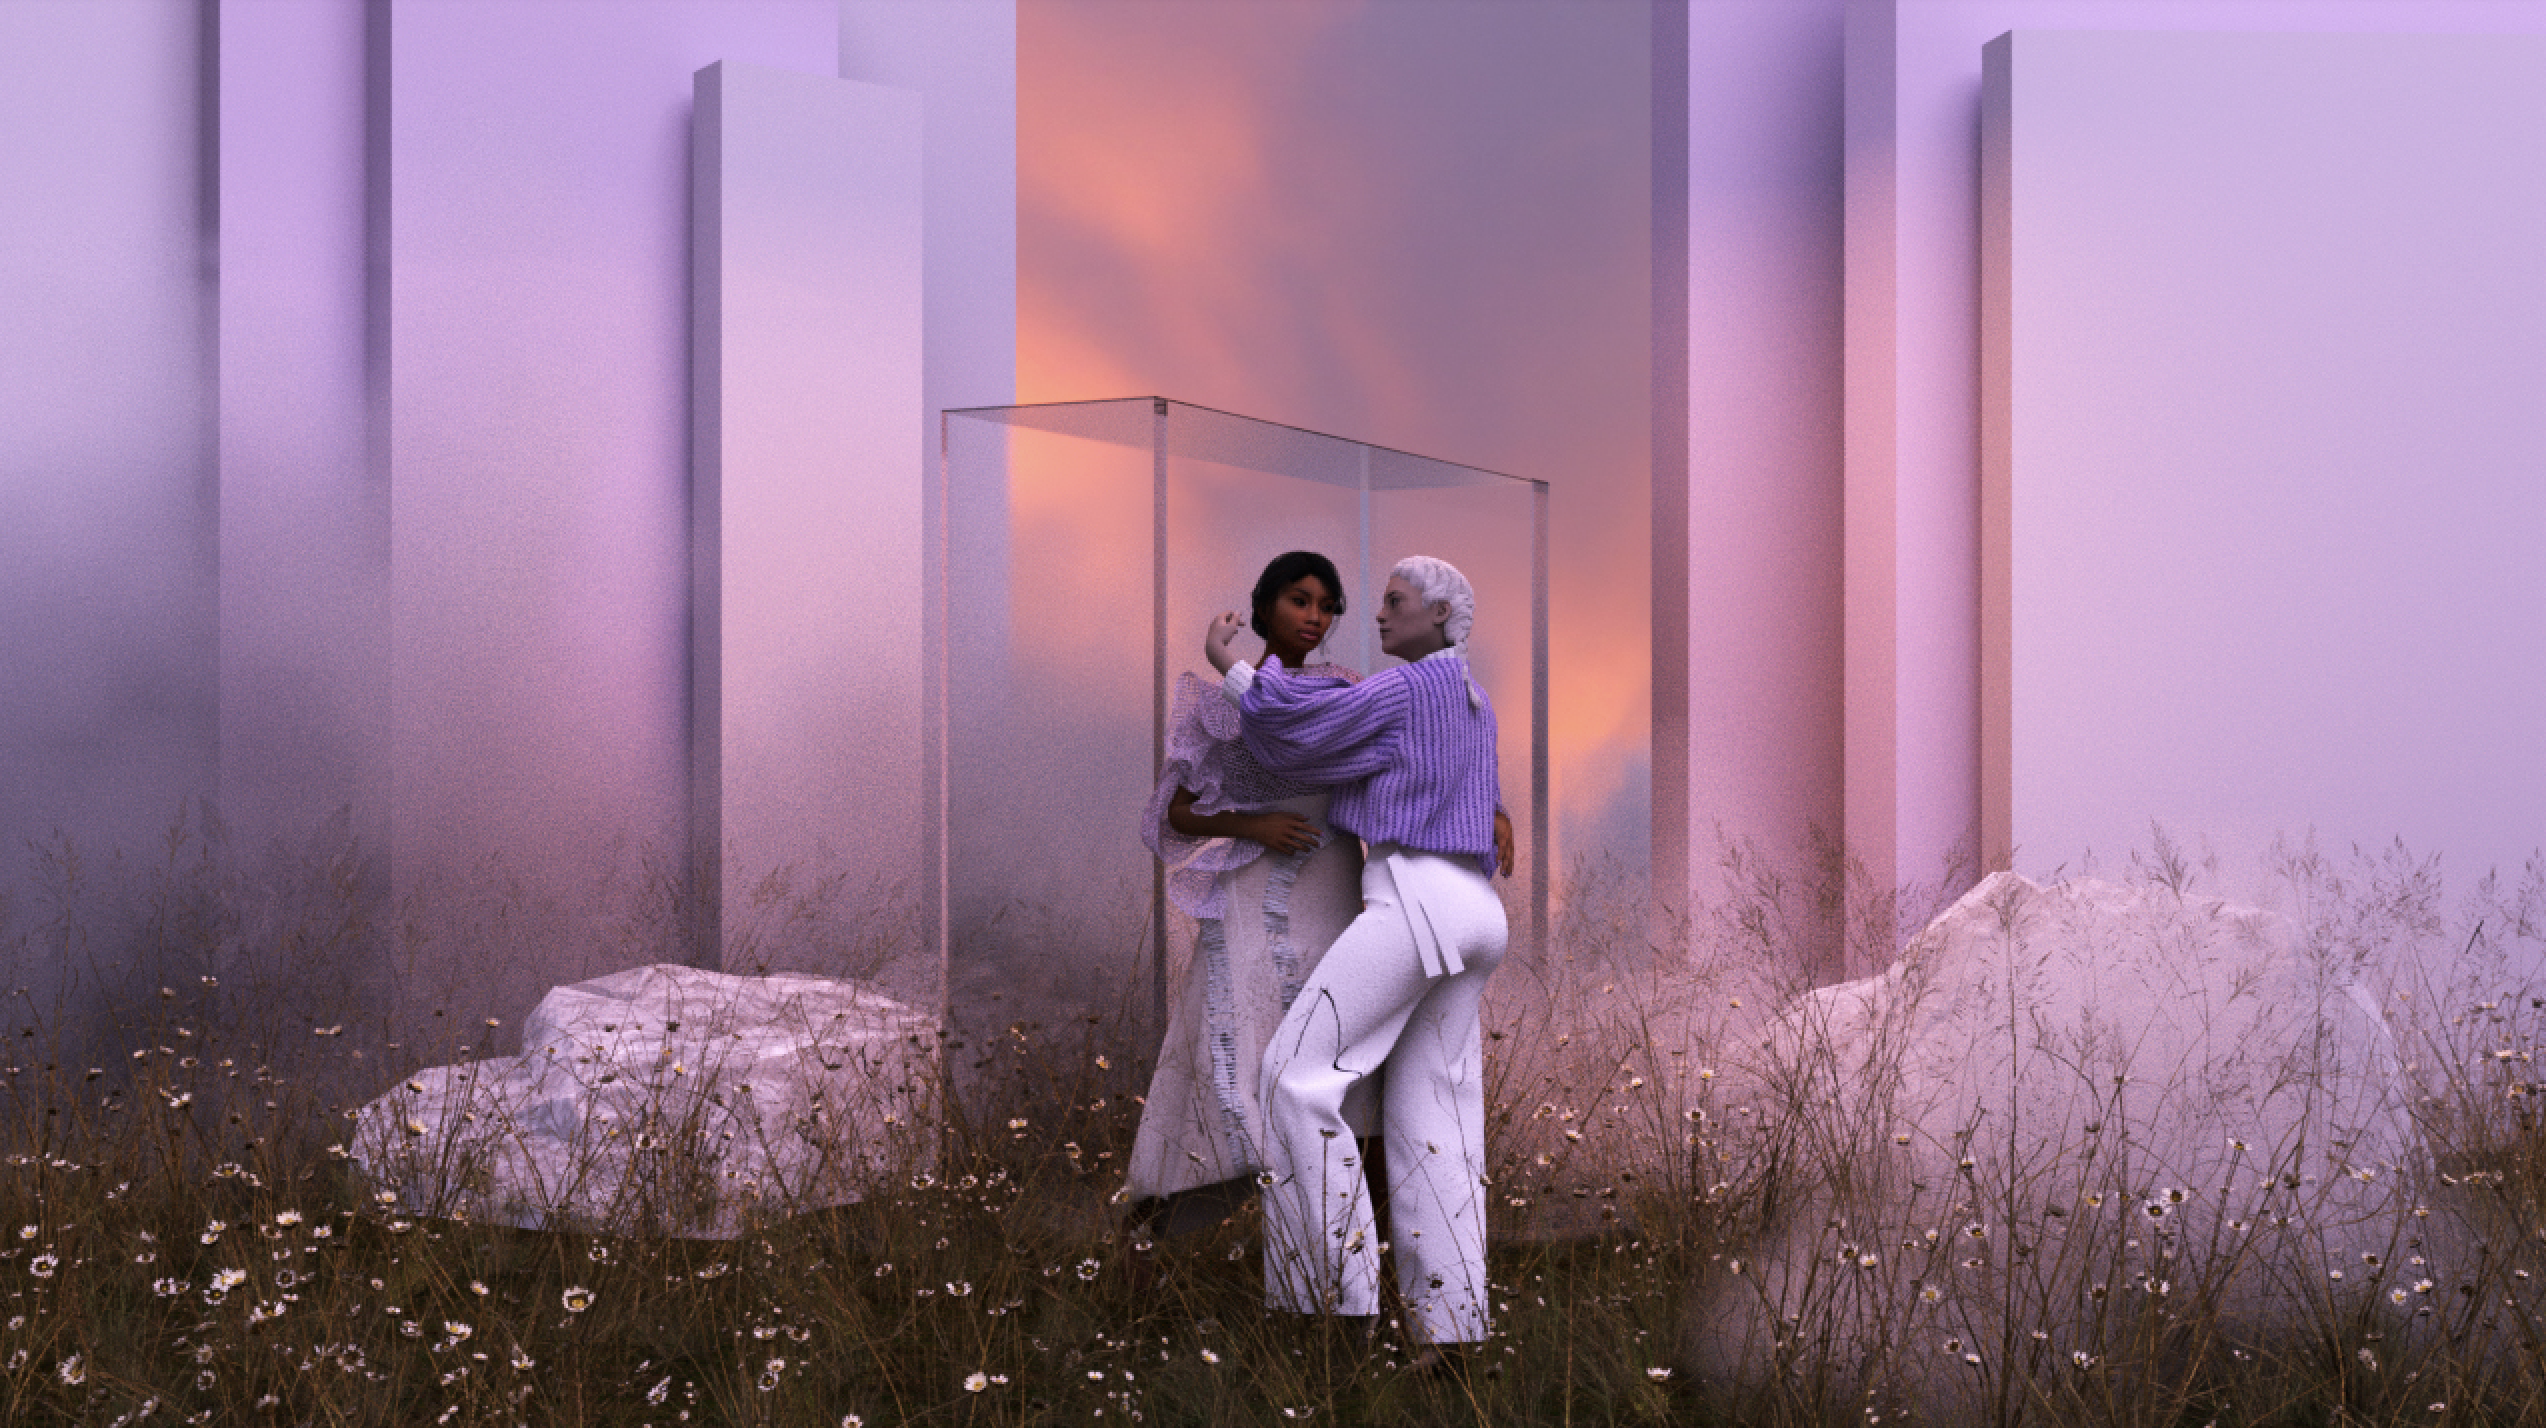 Two women stand, face to face, wearing the purple and white outfit seen at the top of the page. One of the women is trapped in a box and stares at the camera. The women and the box seem to have been placed in a meadow at sunset. Behind them, the sky is a dramatic mix of purple and orange. They stand on wild, flowering grasses between large, white rocks. Behind the rocks, digital walls box in the two models.